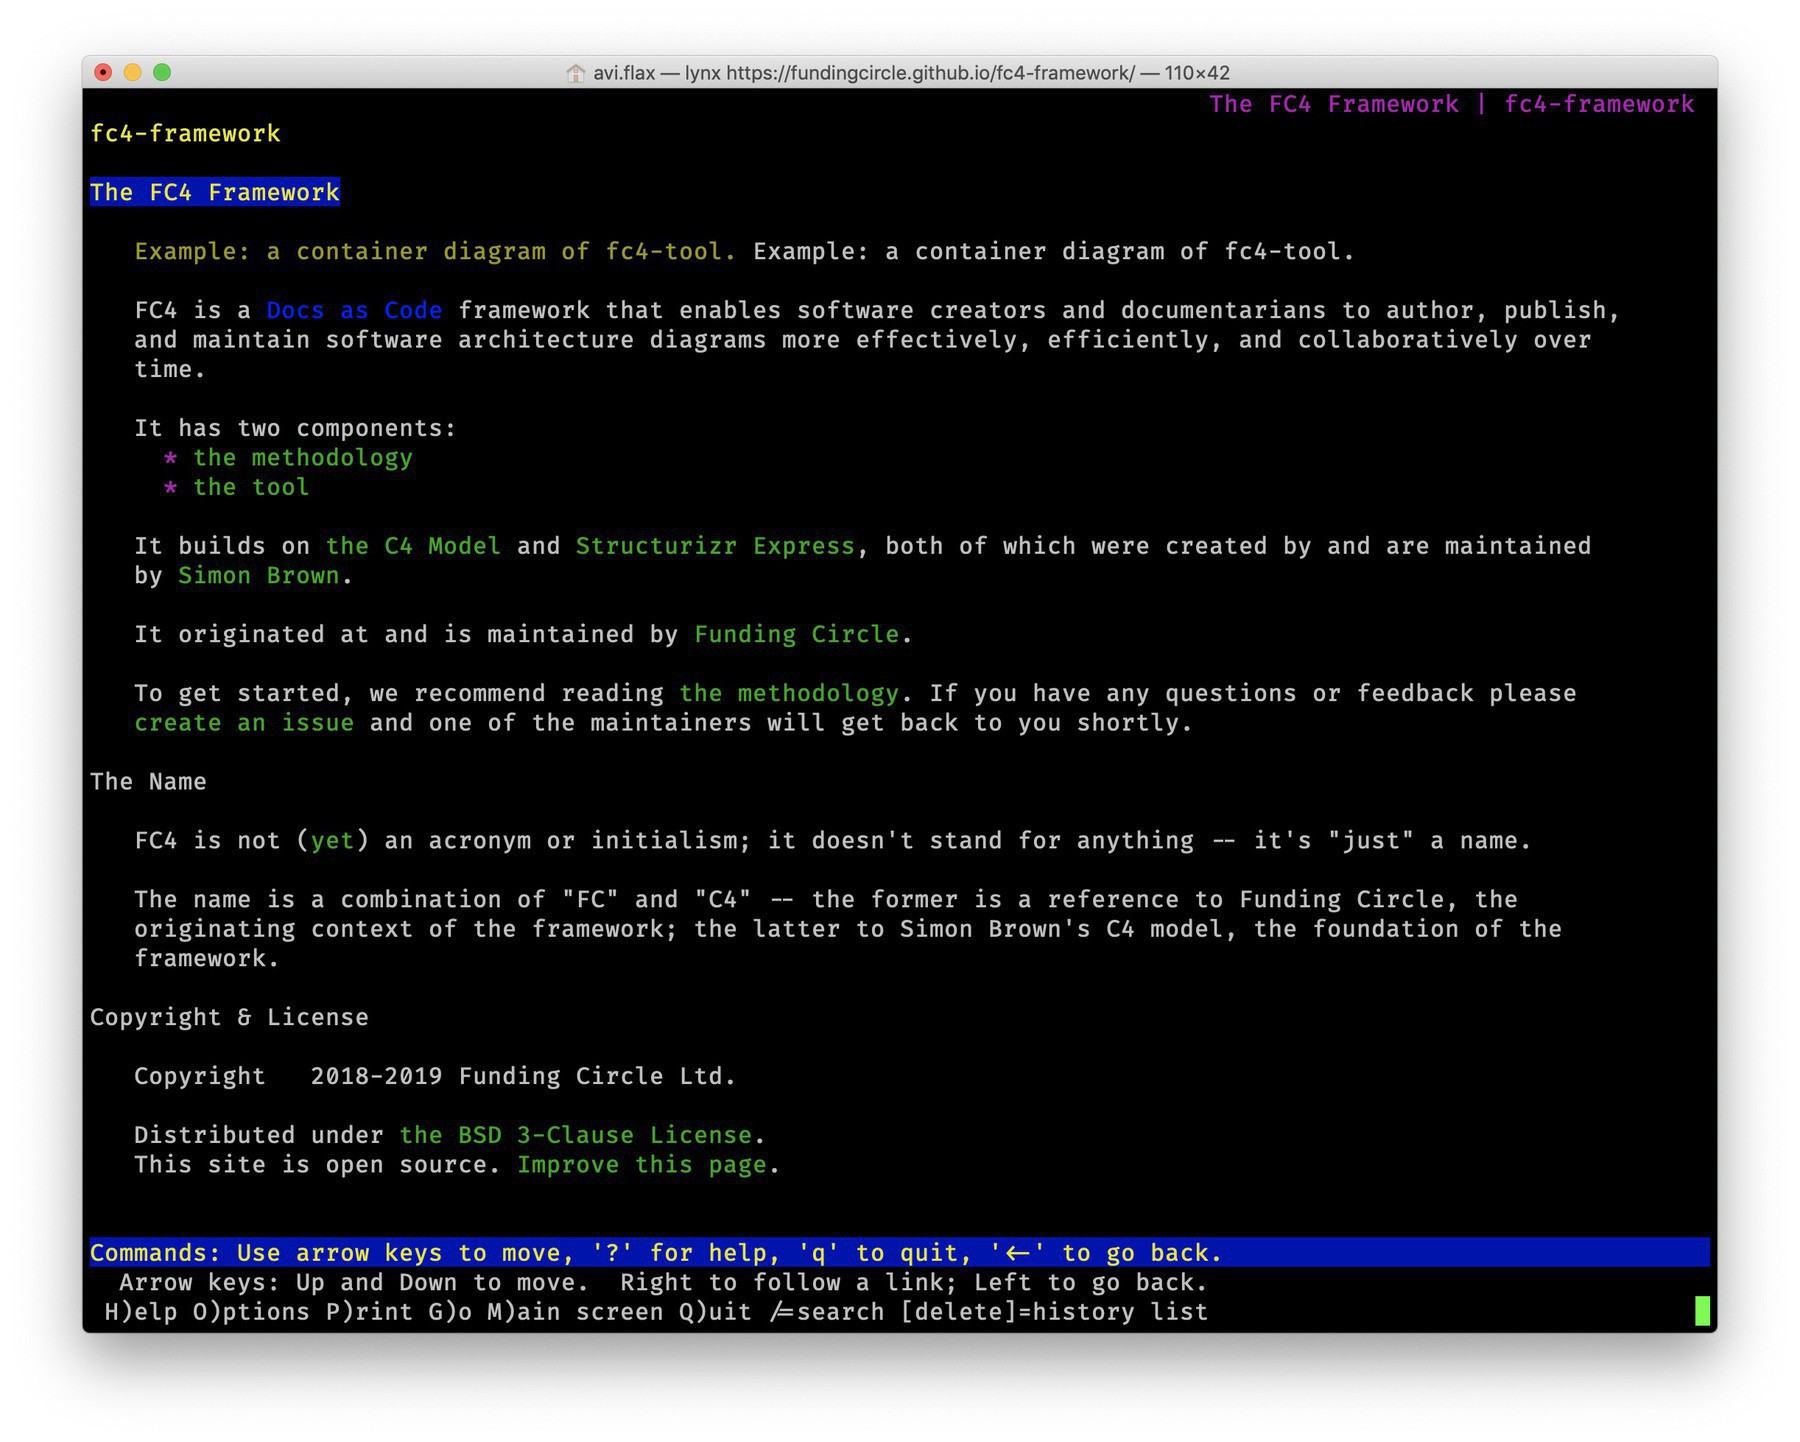 Screenshot of the homepage of the FC4 Framework loaded in Lynx in a MacOS (10.14 Mojave) Terminal window.